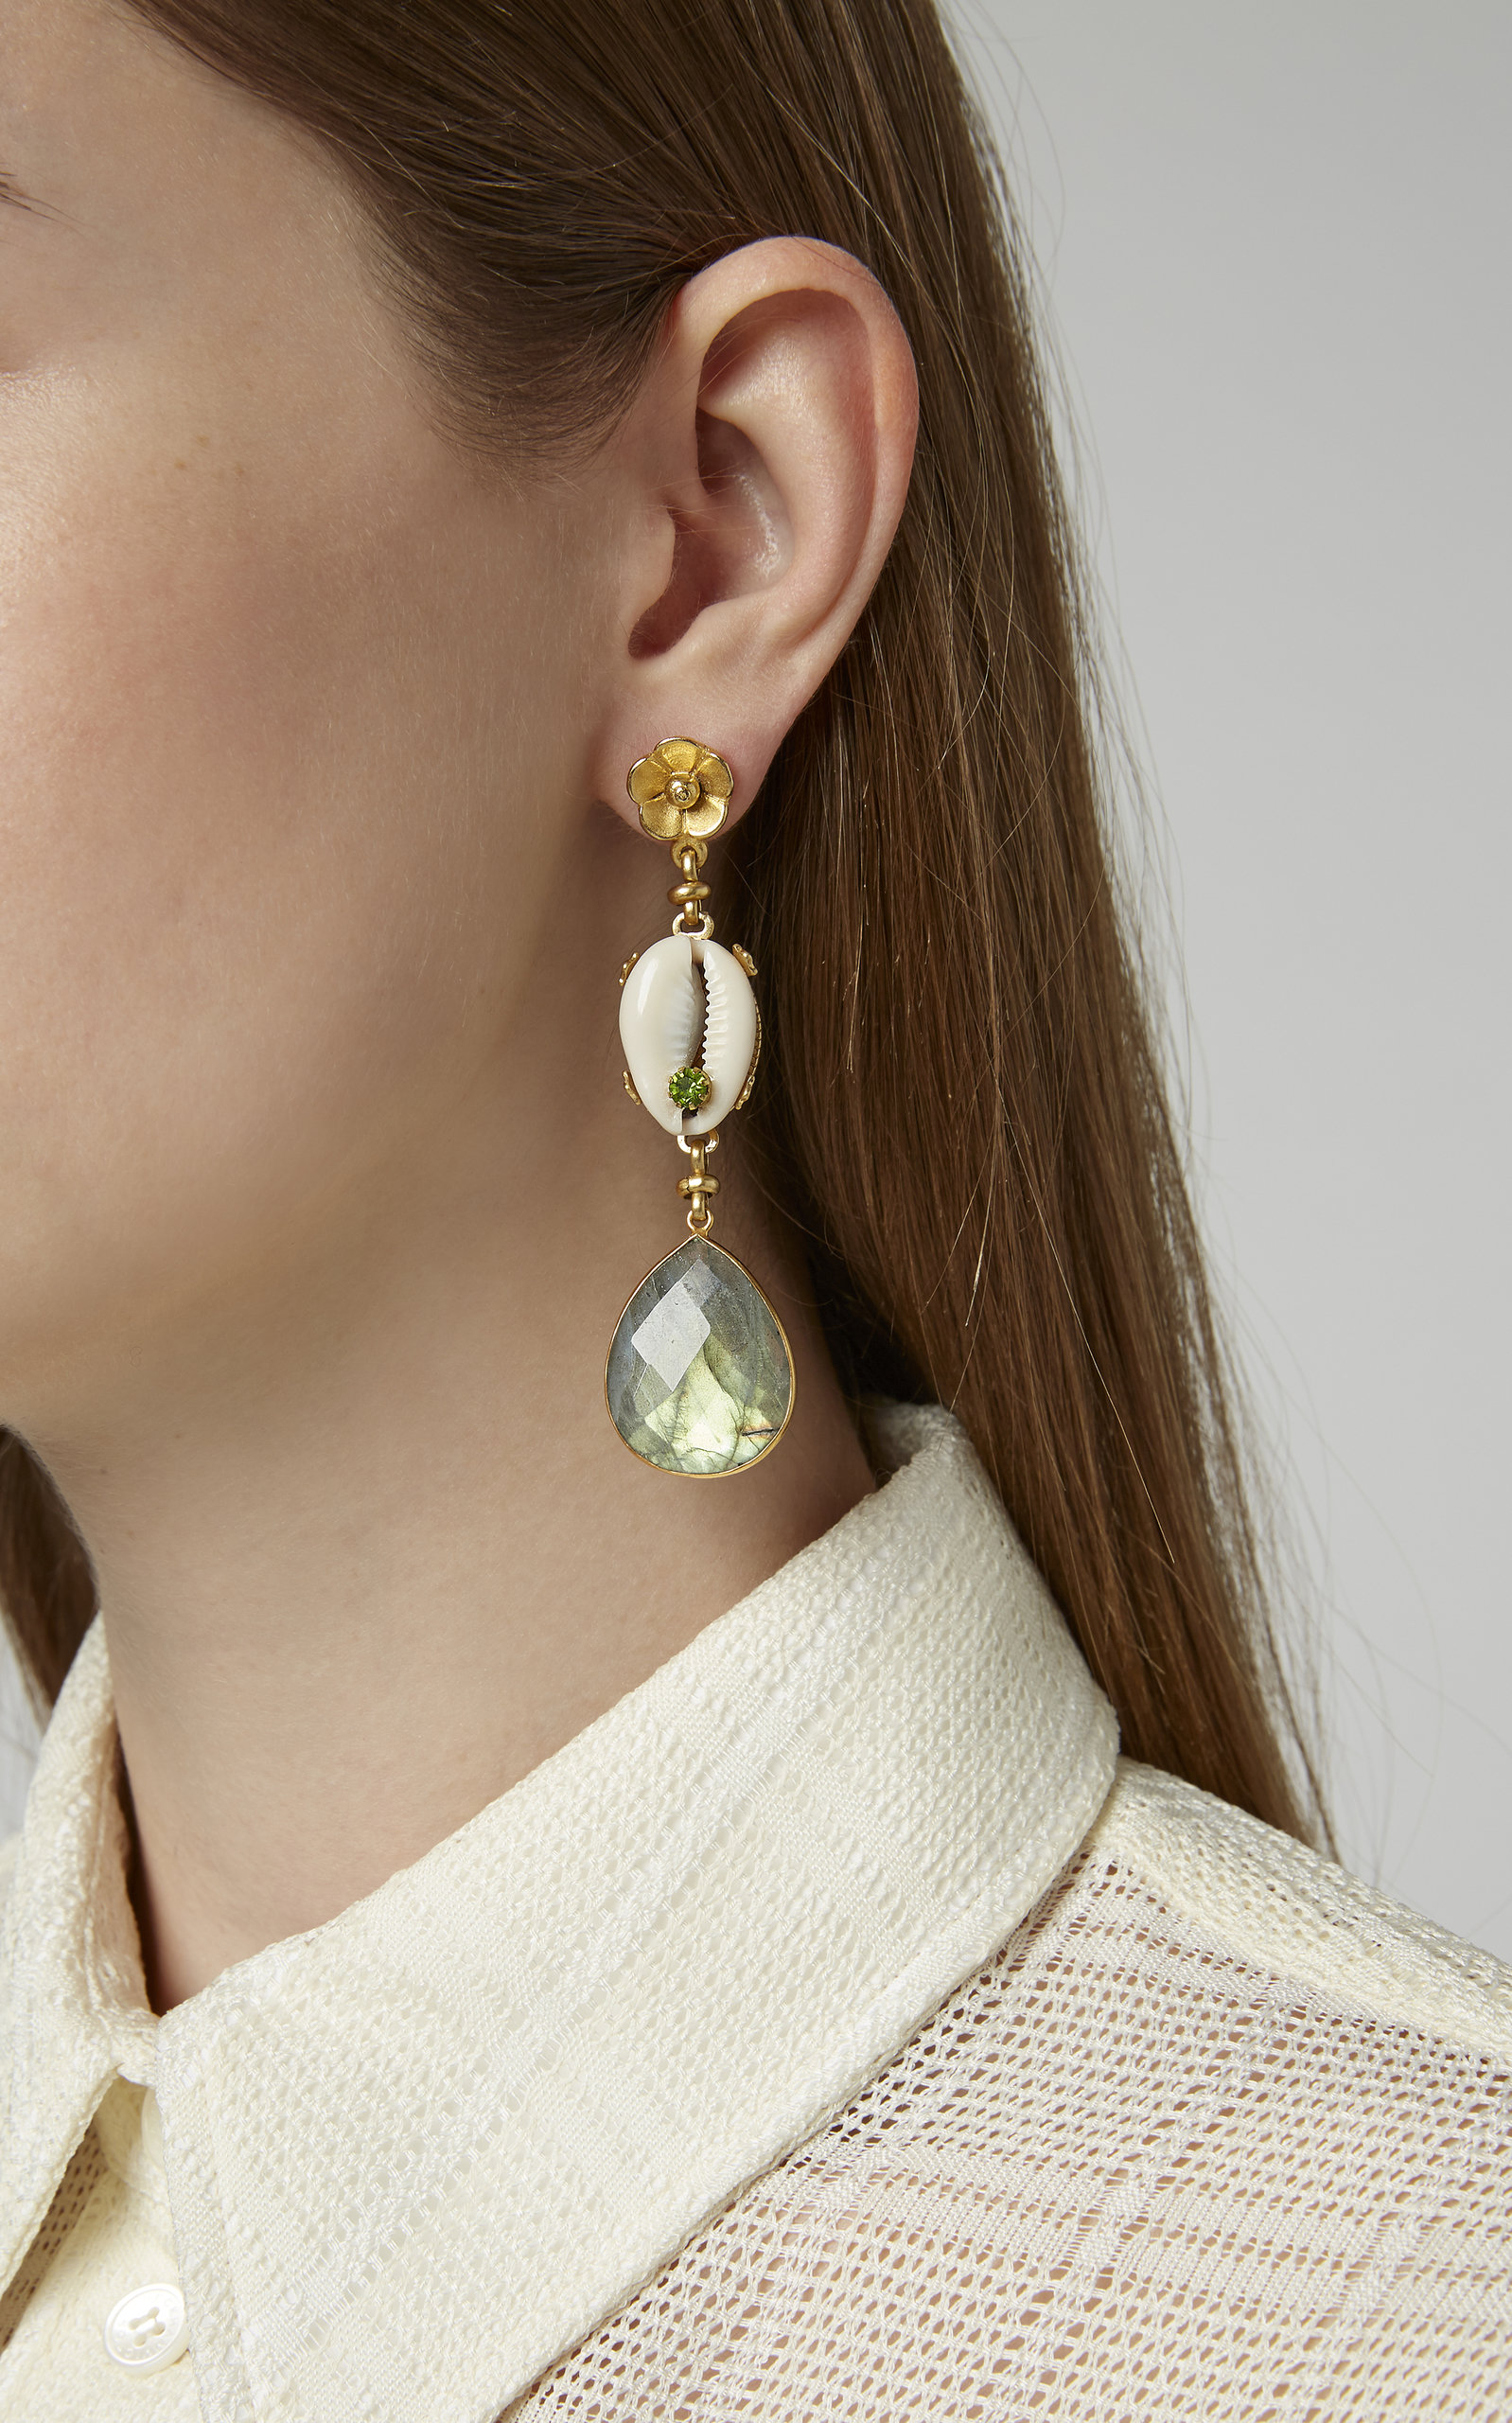 Eden 24K Gold-Plated Shell and Multi-Stone Earrings